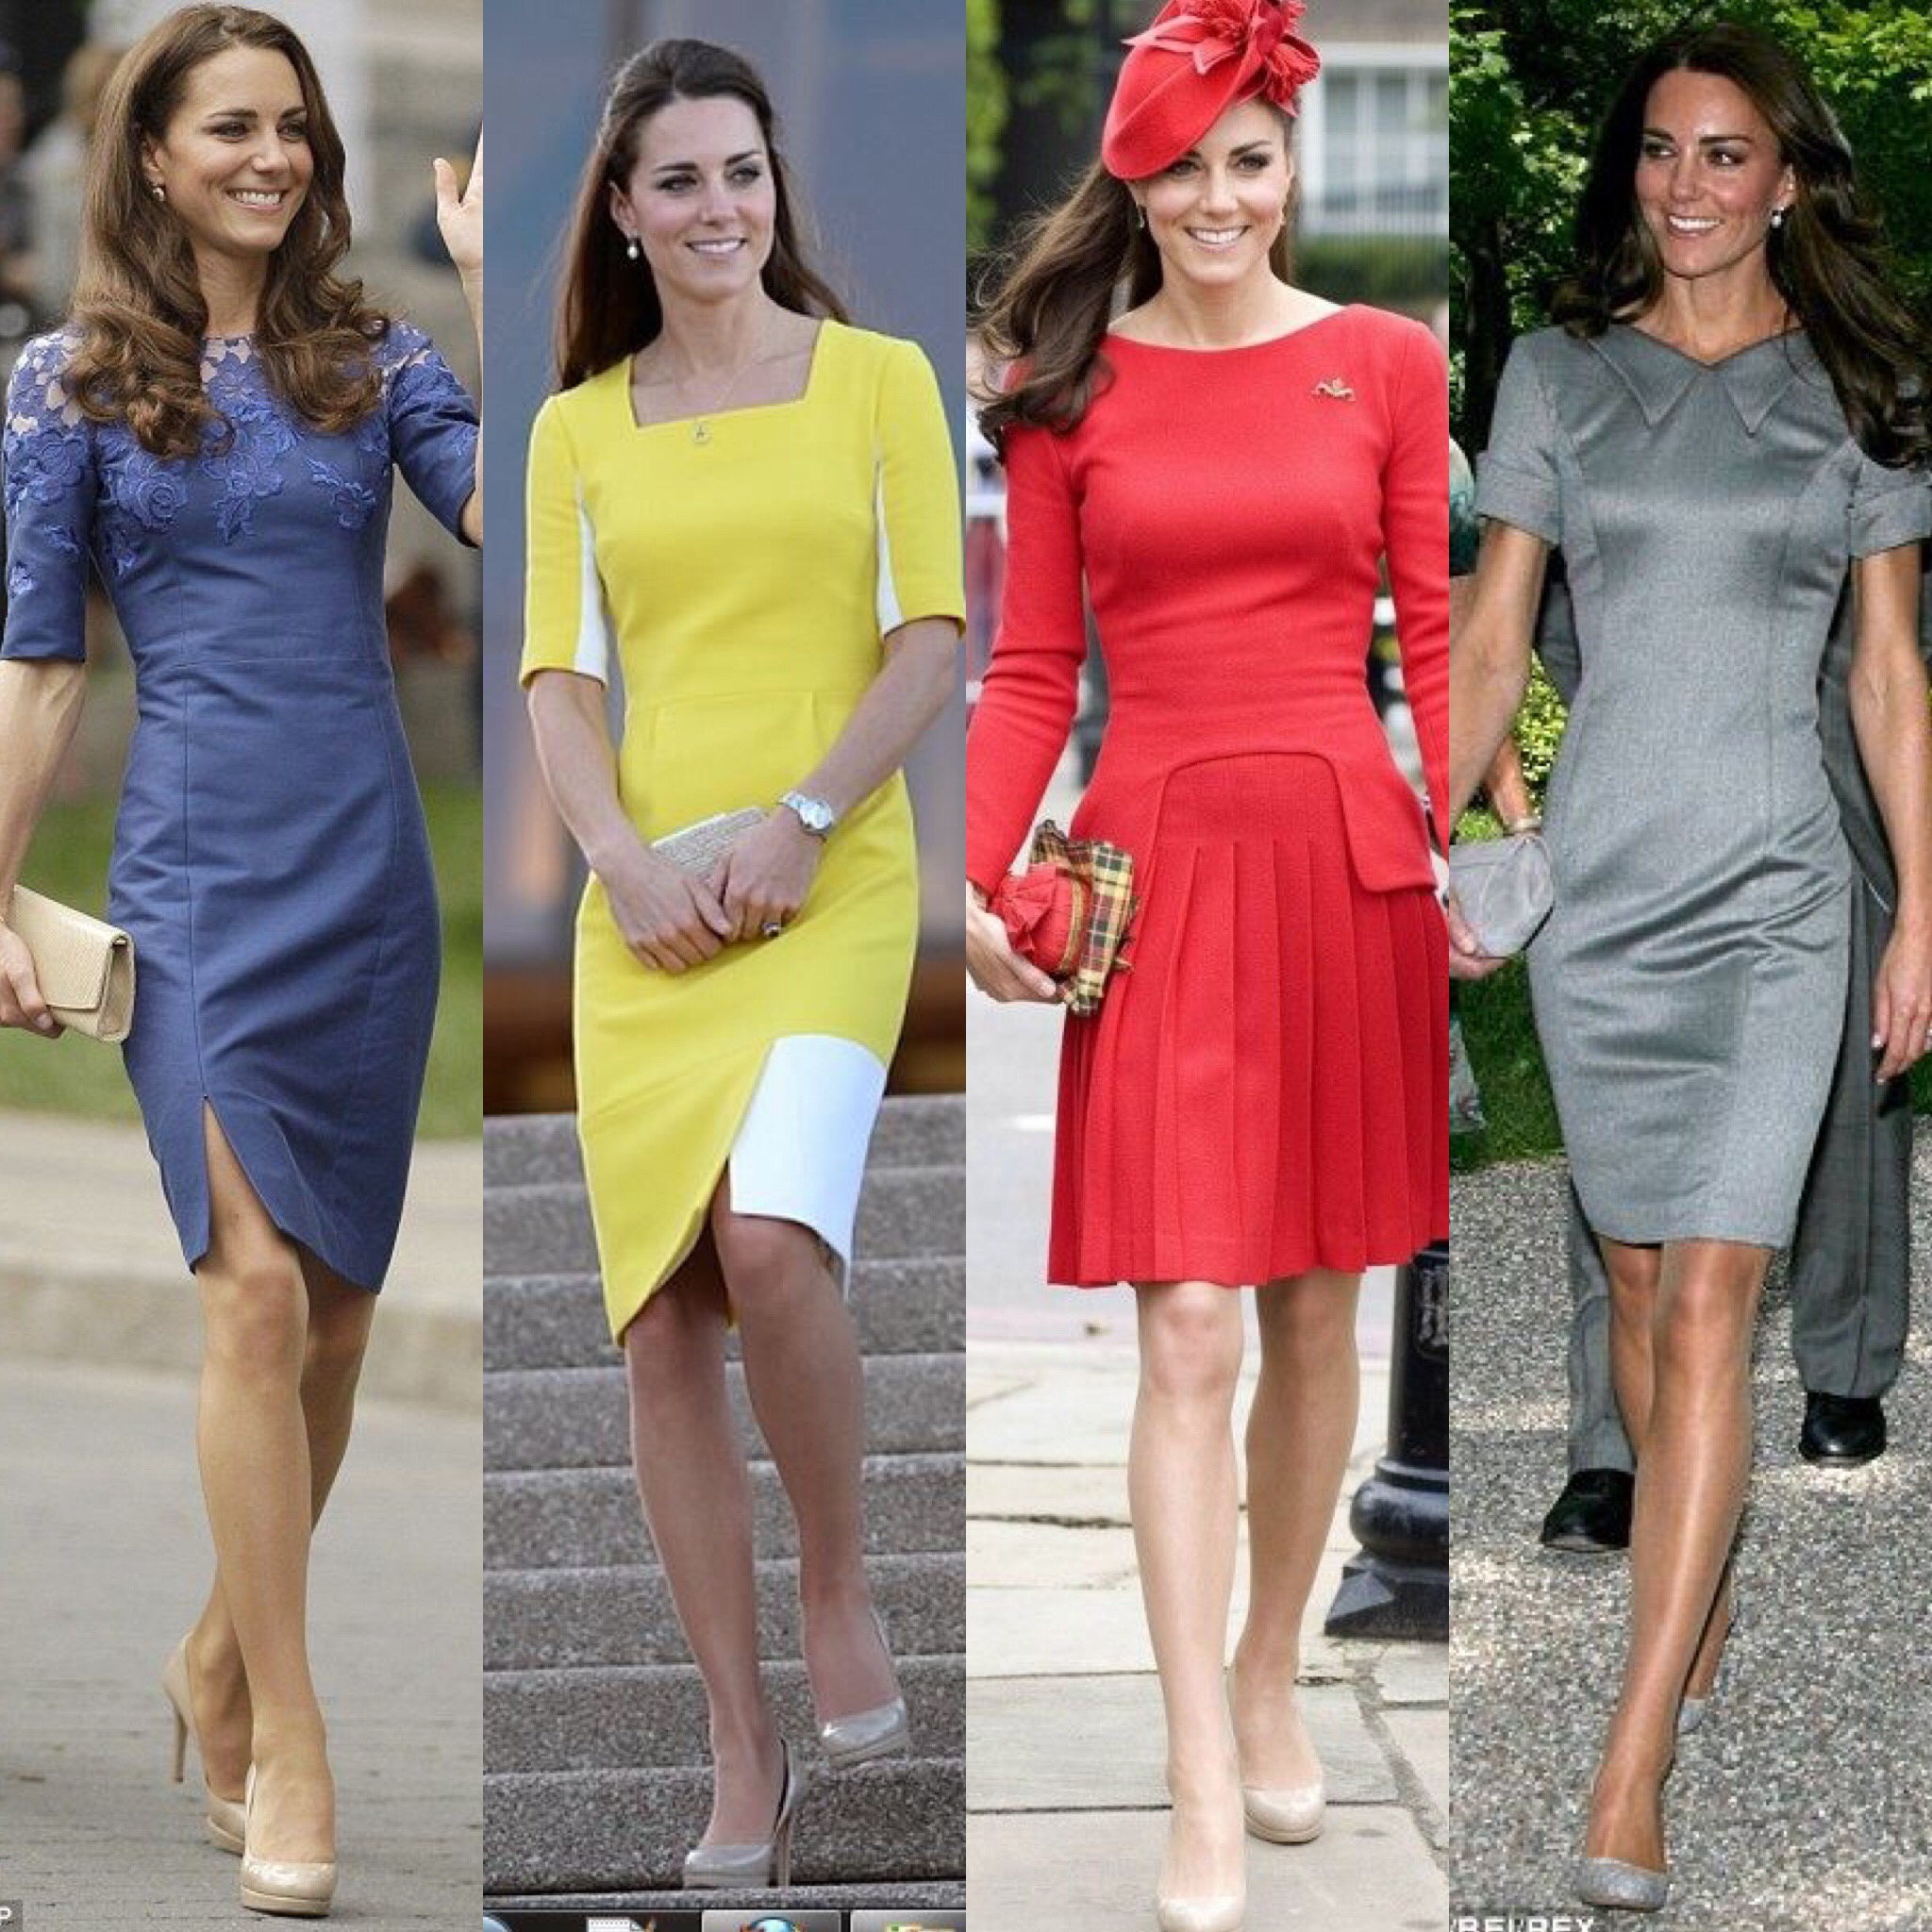 Kate Middleton 39 S Looks And Her Incredible Metamorphosis Consulente Di Immagine Rossella